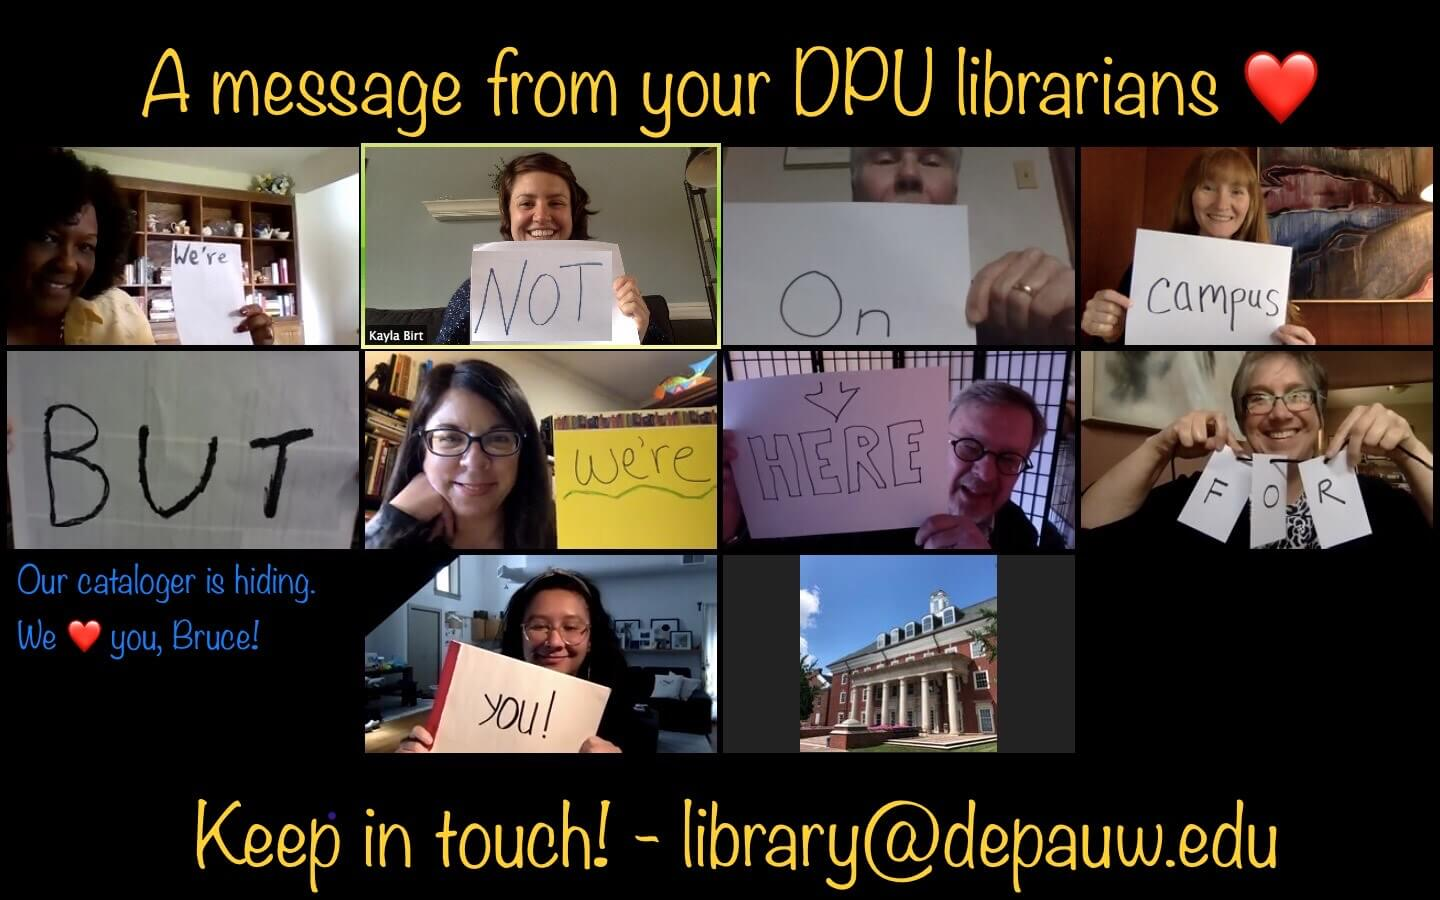 DePauw University Library collage